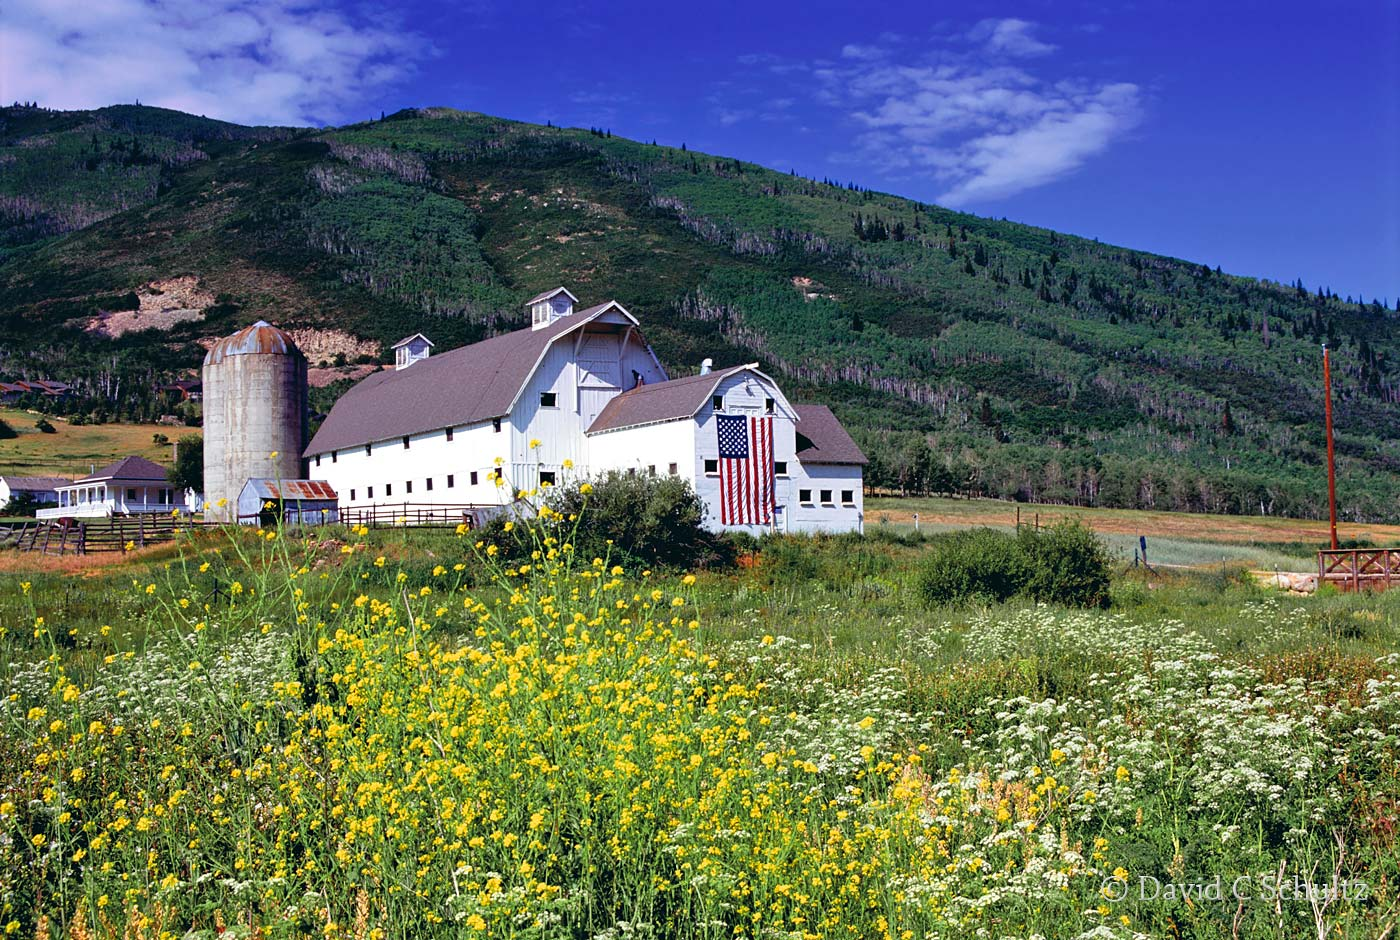 Summer at the McPolin Barn in Park City, UT - Image #13-1554